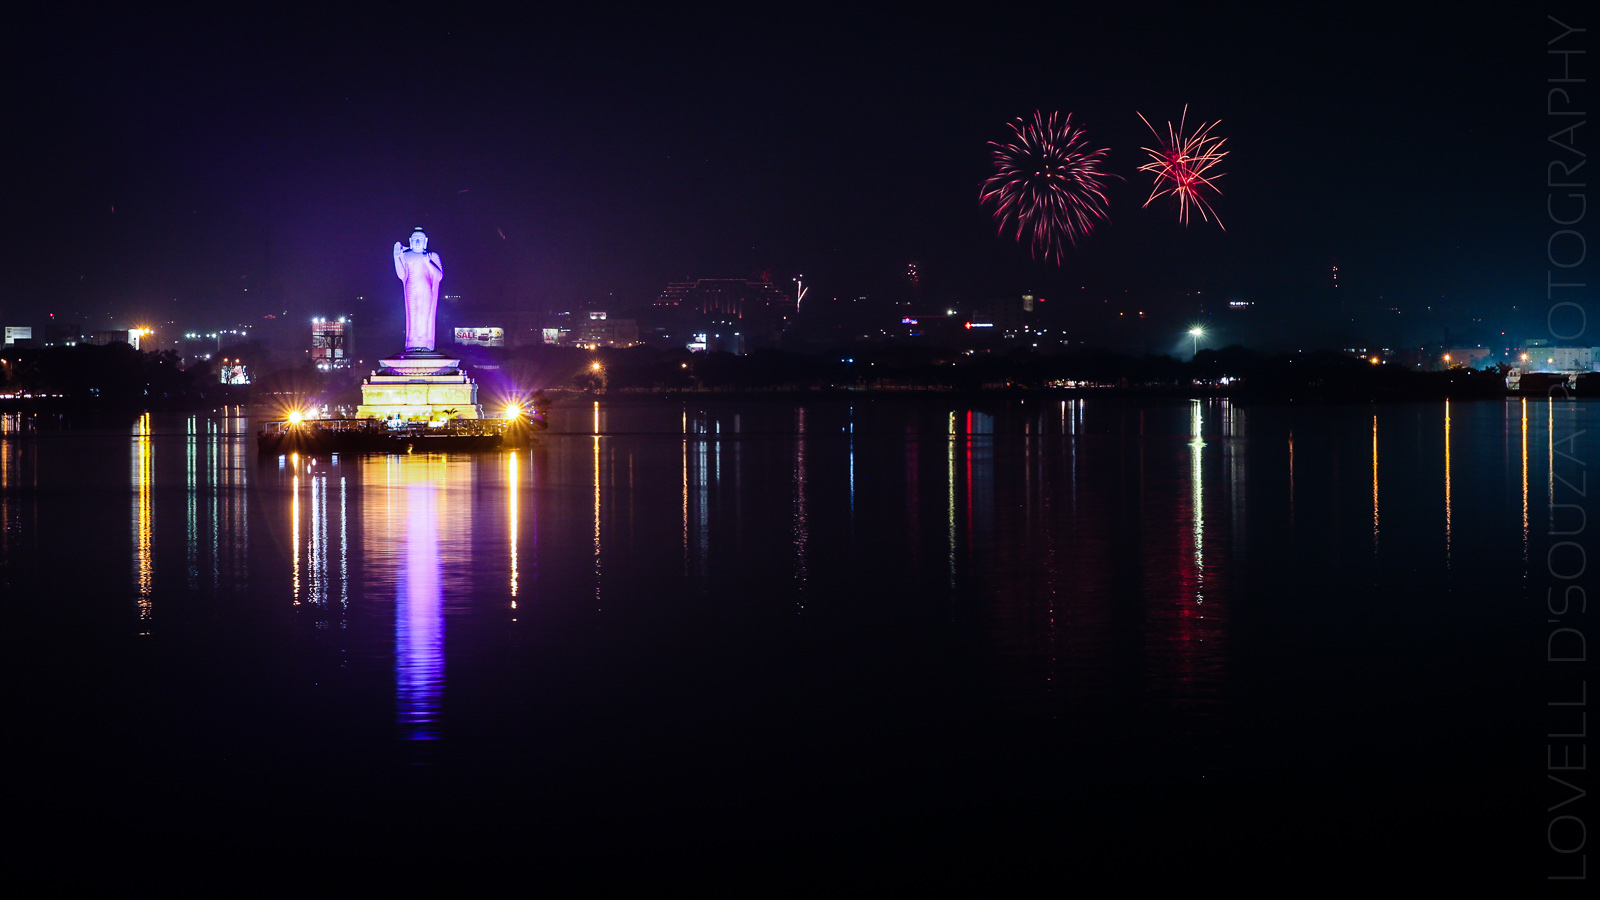 Diwali at the Hussain Sagar